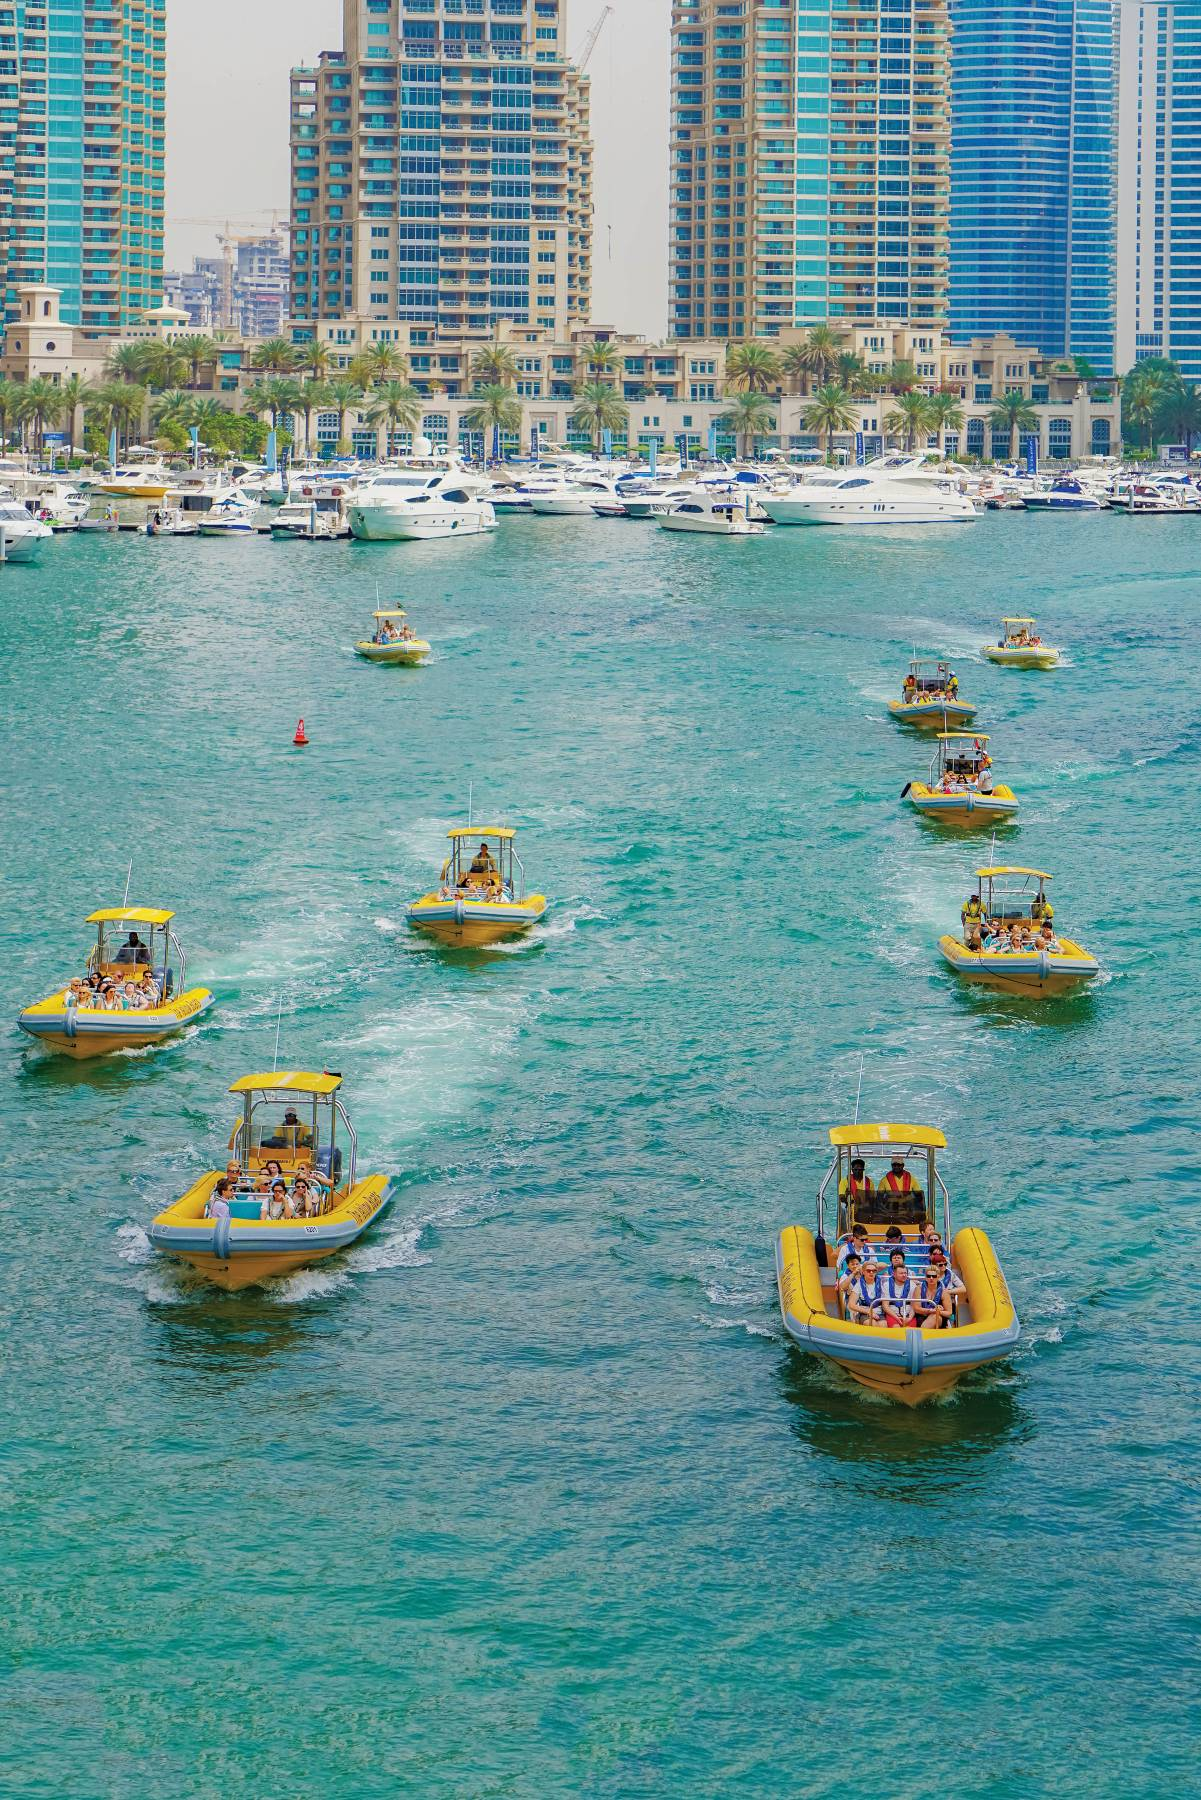 The-Yellow-Boats-Dubai-011-Sightseeing-Tour-Group